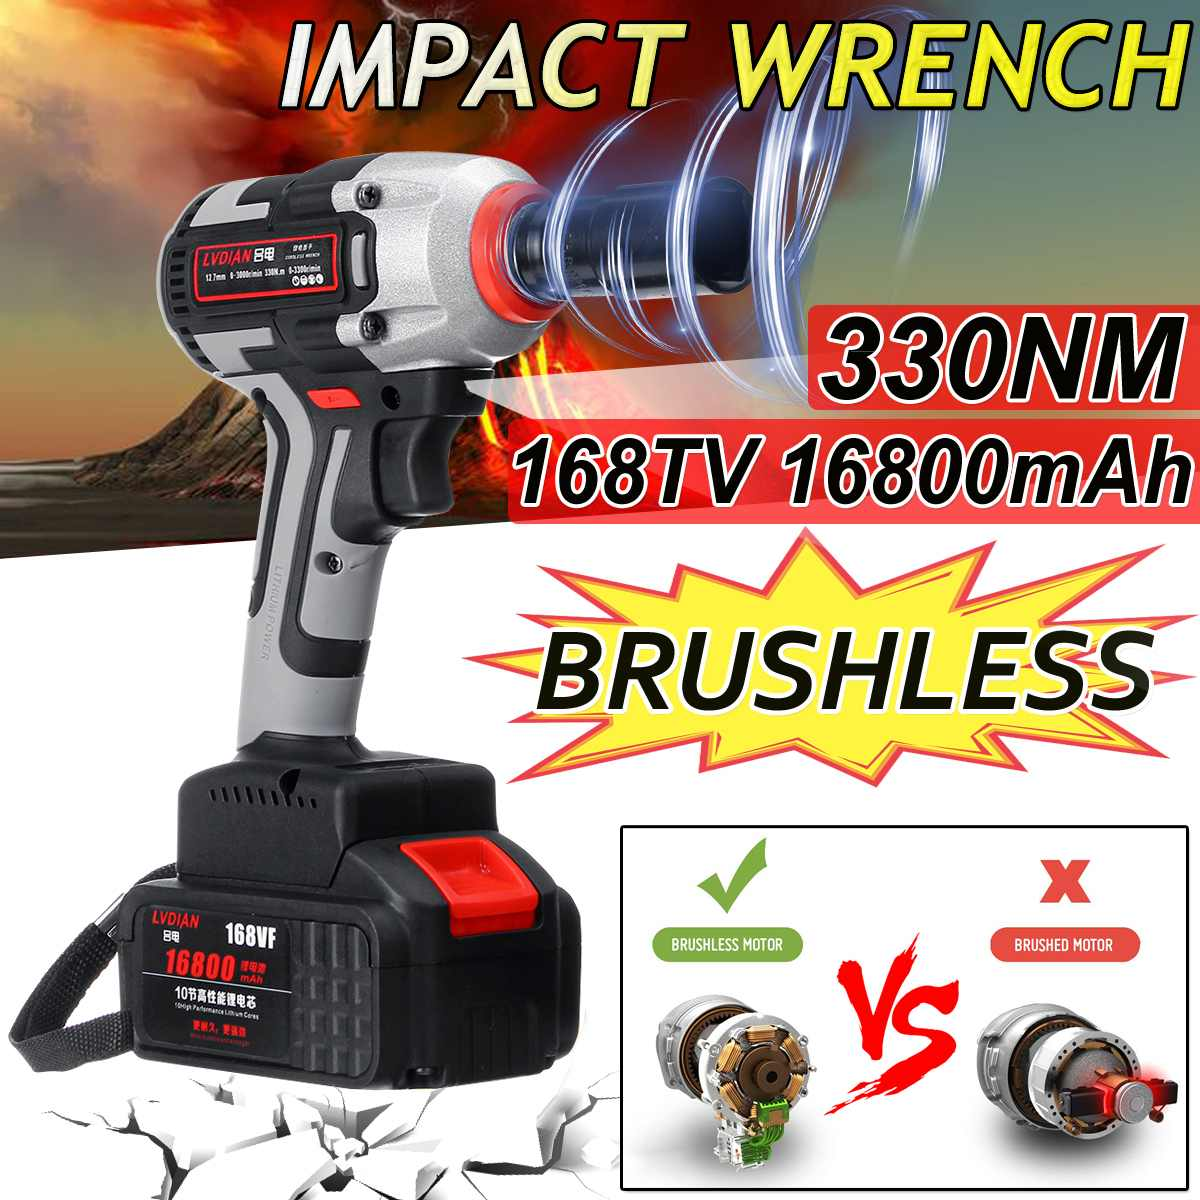 New 16800mAh 330NM Brushless Cordless Electric Wrench Impact Driver Power Tool Rechargeable Lithium Battery Household Drill|Electric Wrenches| |  - title=